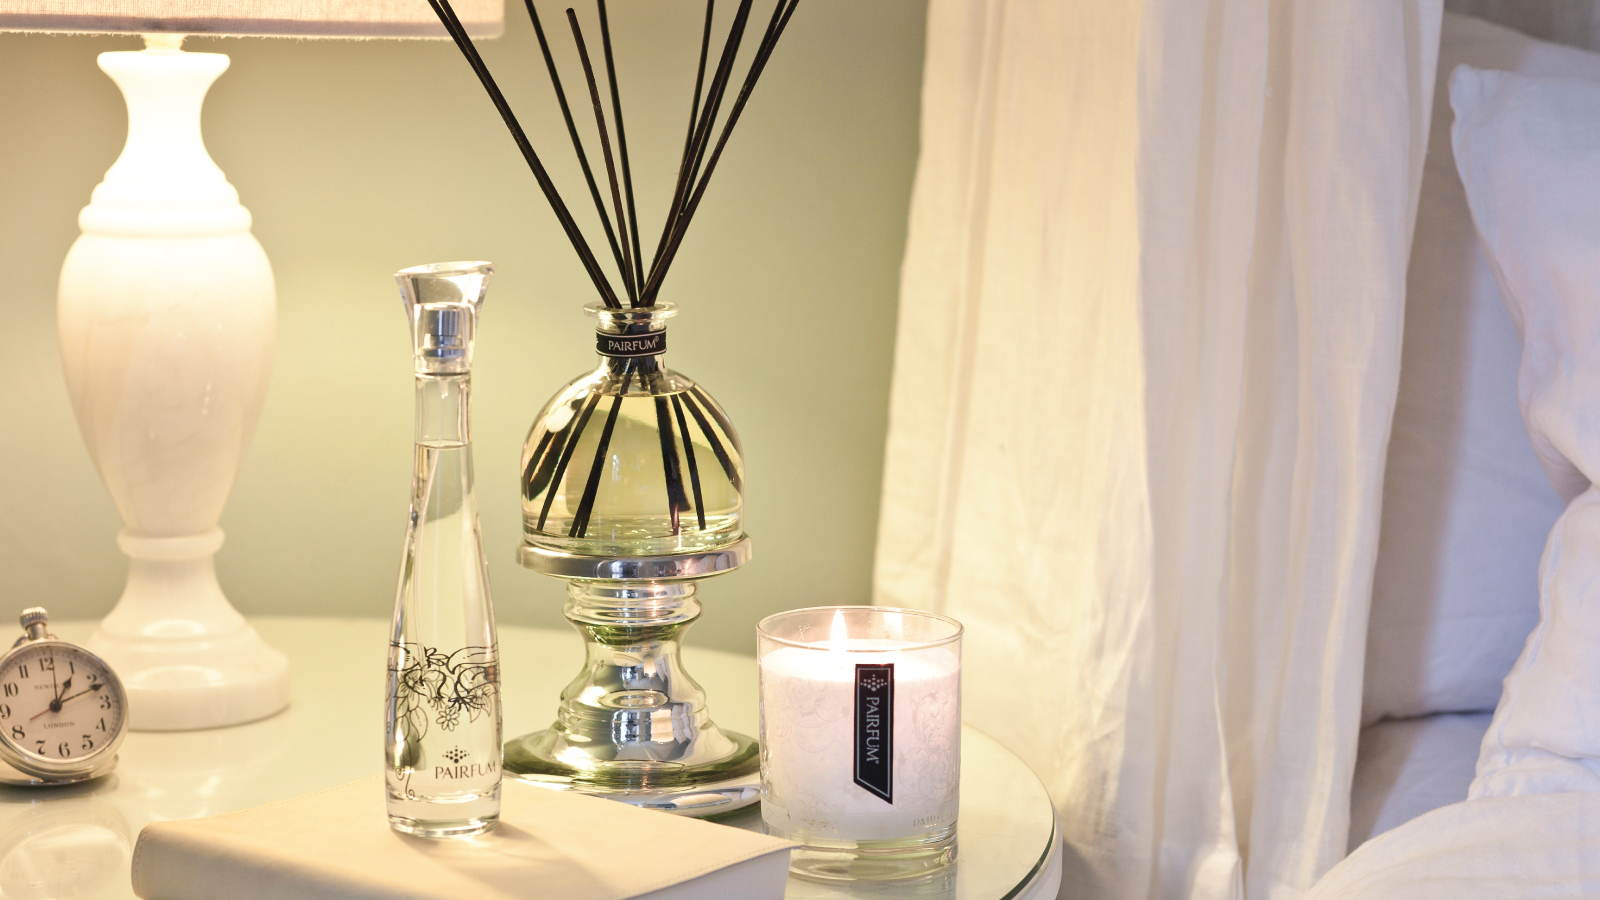 Lifestyle Bedroom Reed Diffuser Room Spray Perfume Candle 16 9